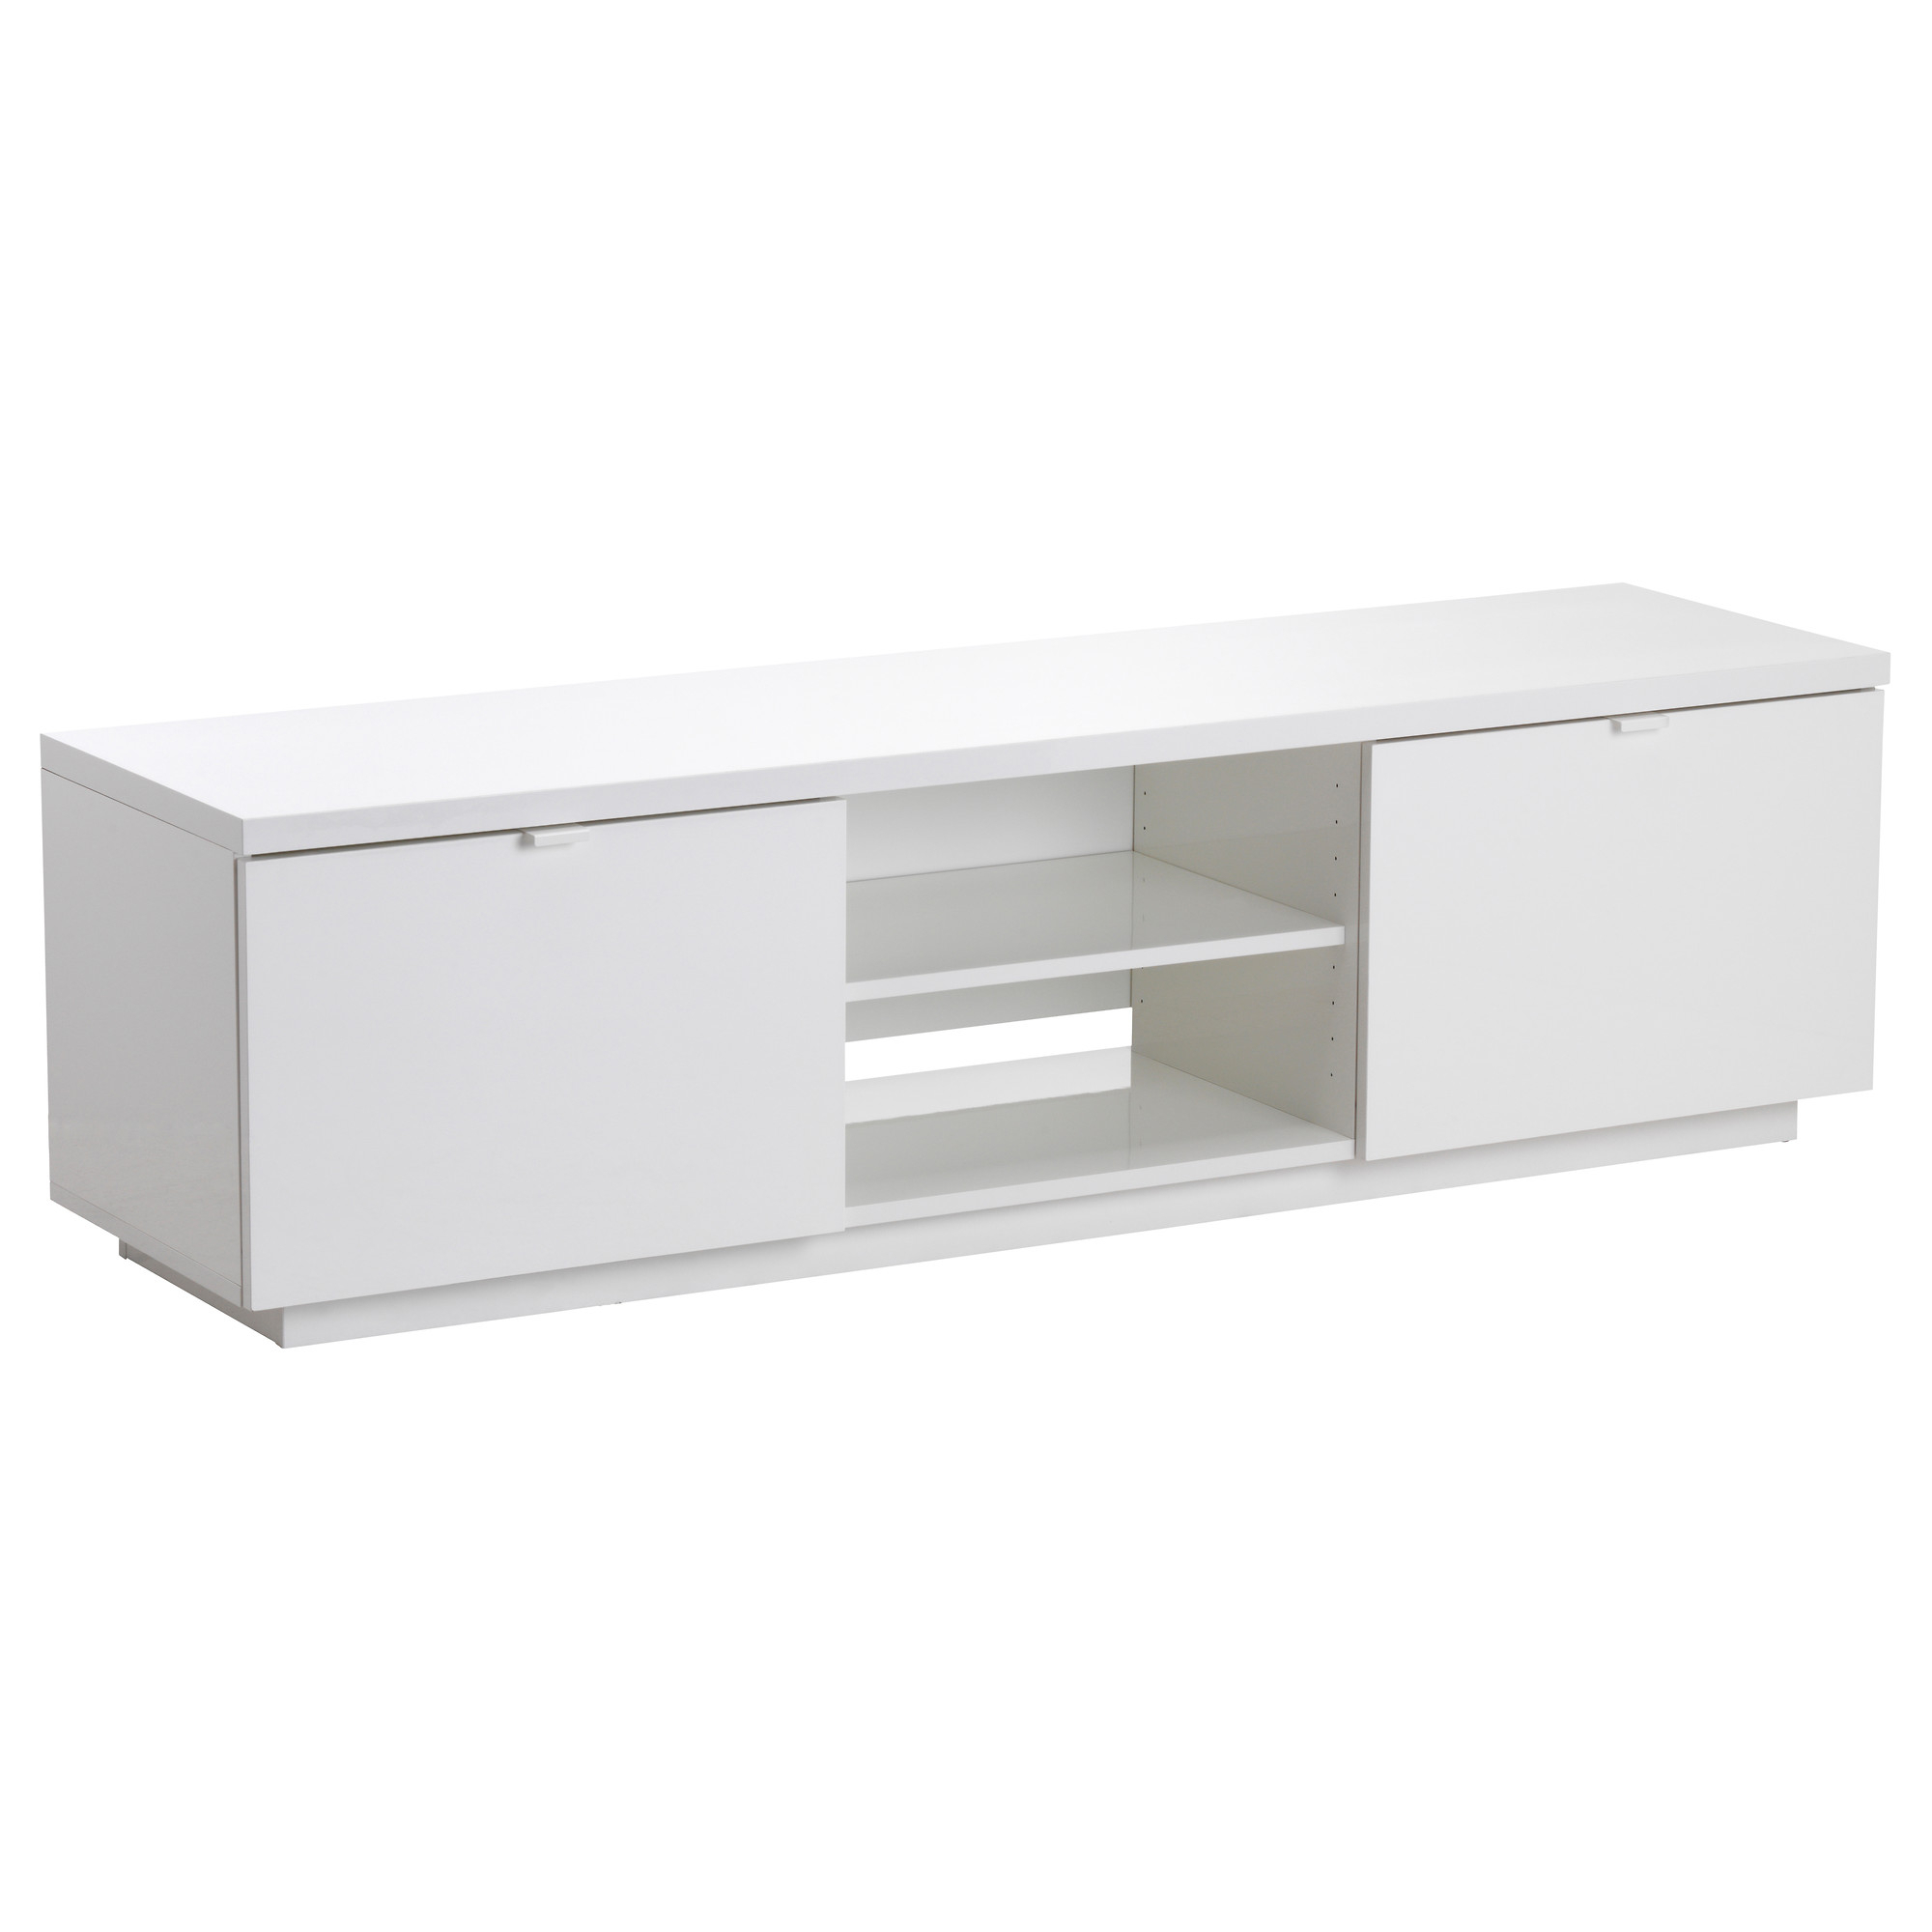 White High Gloss Tv Units Modern Entertainment Center Ikea Home In 2018 High Gloss White Tv Cabinets (View 13 of 20)